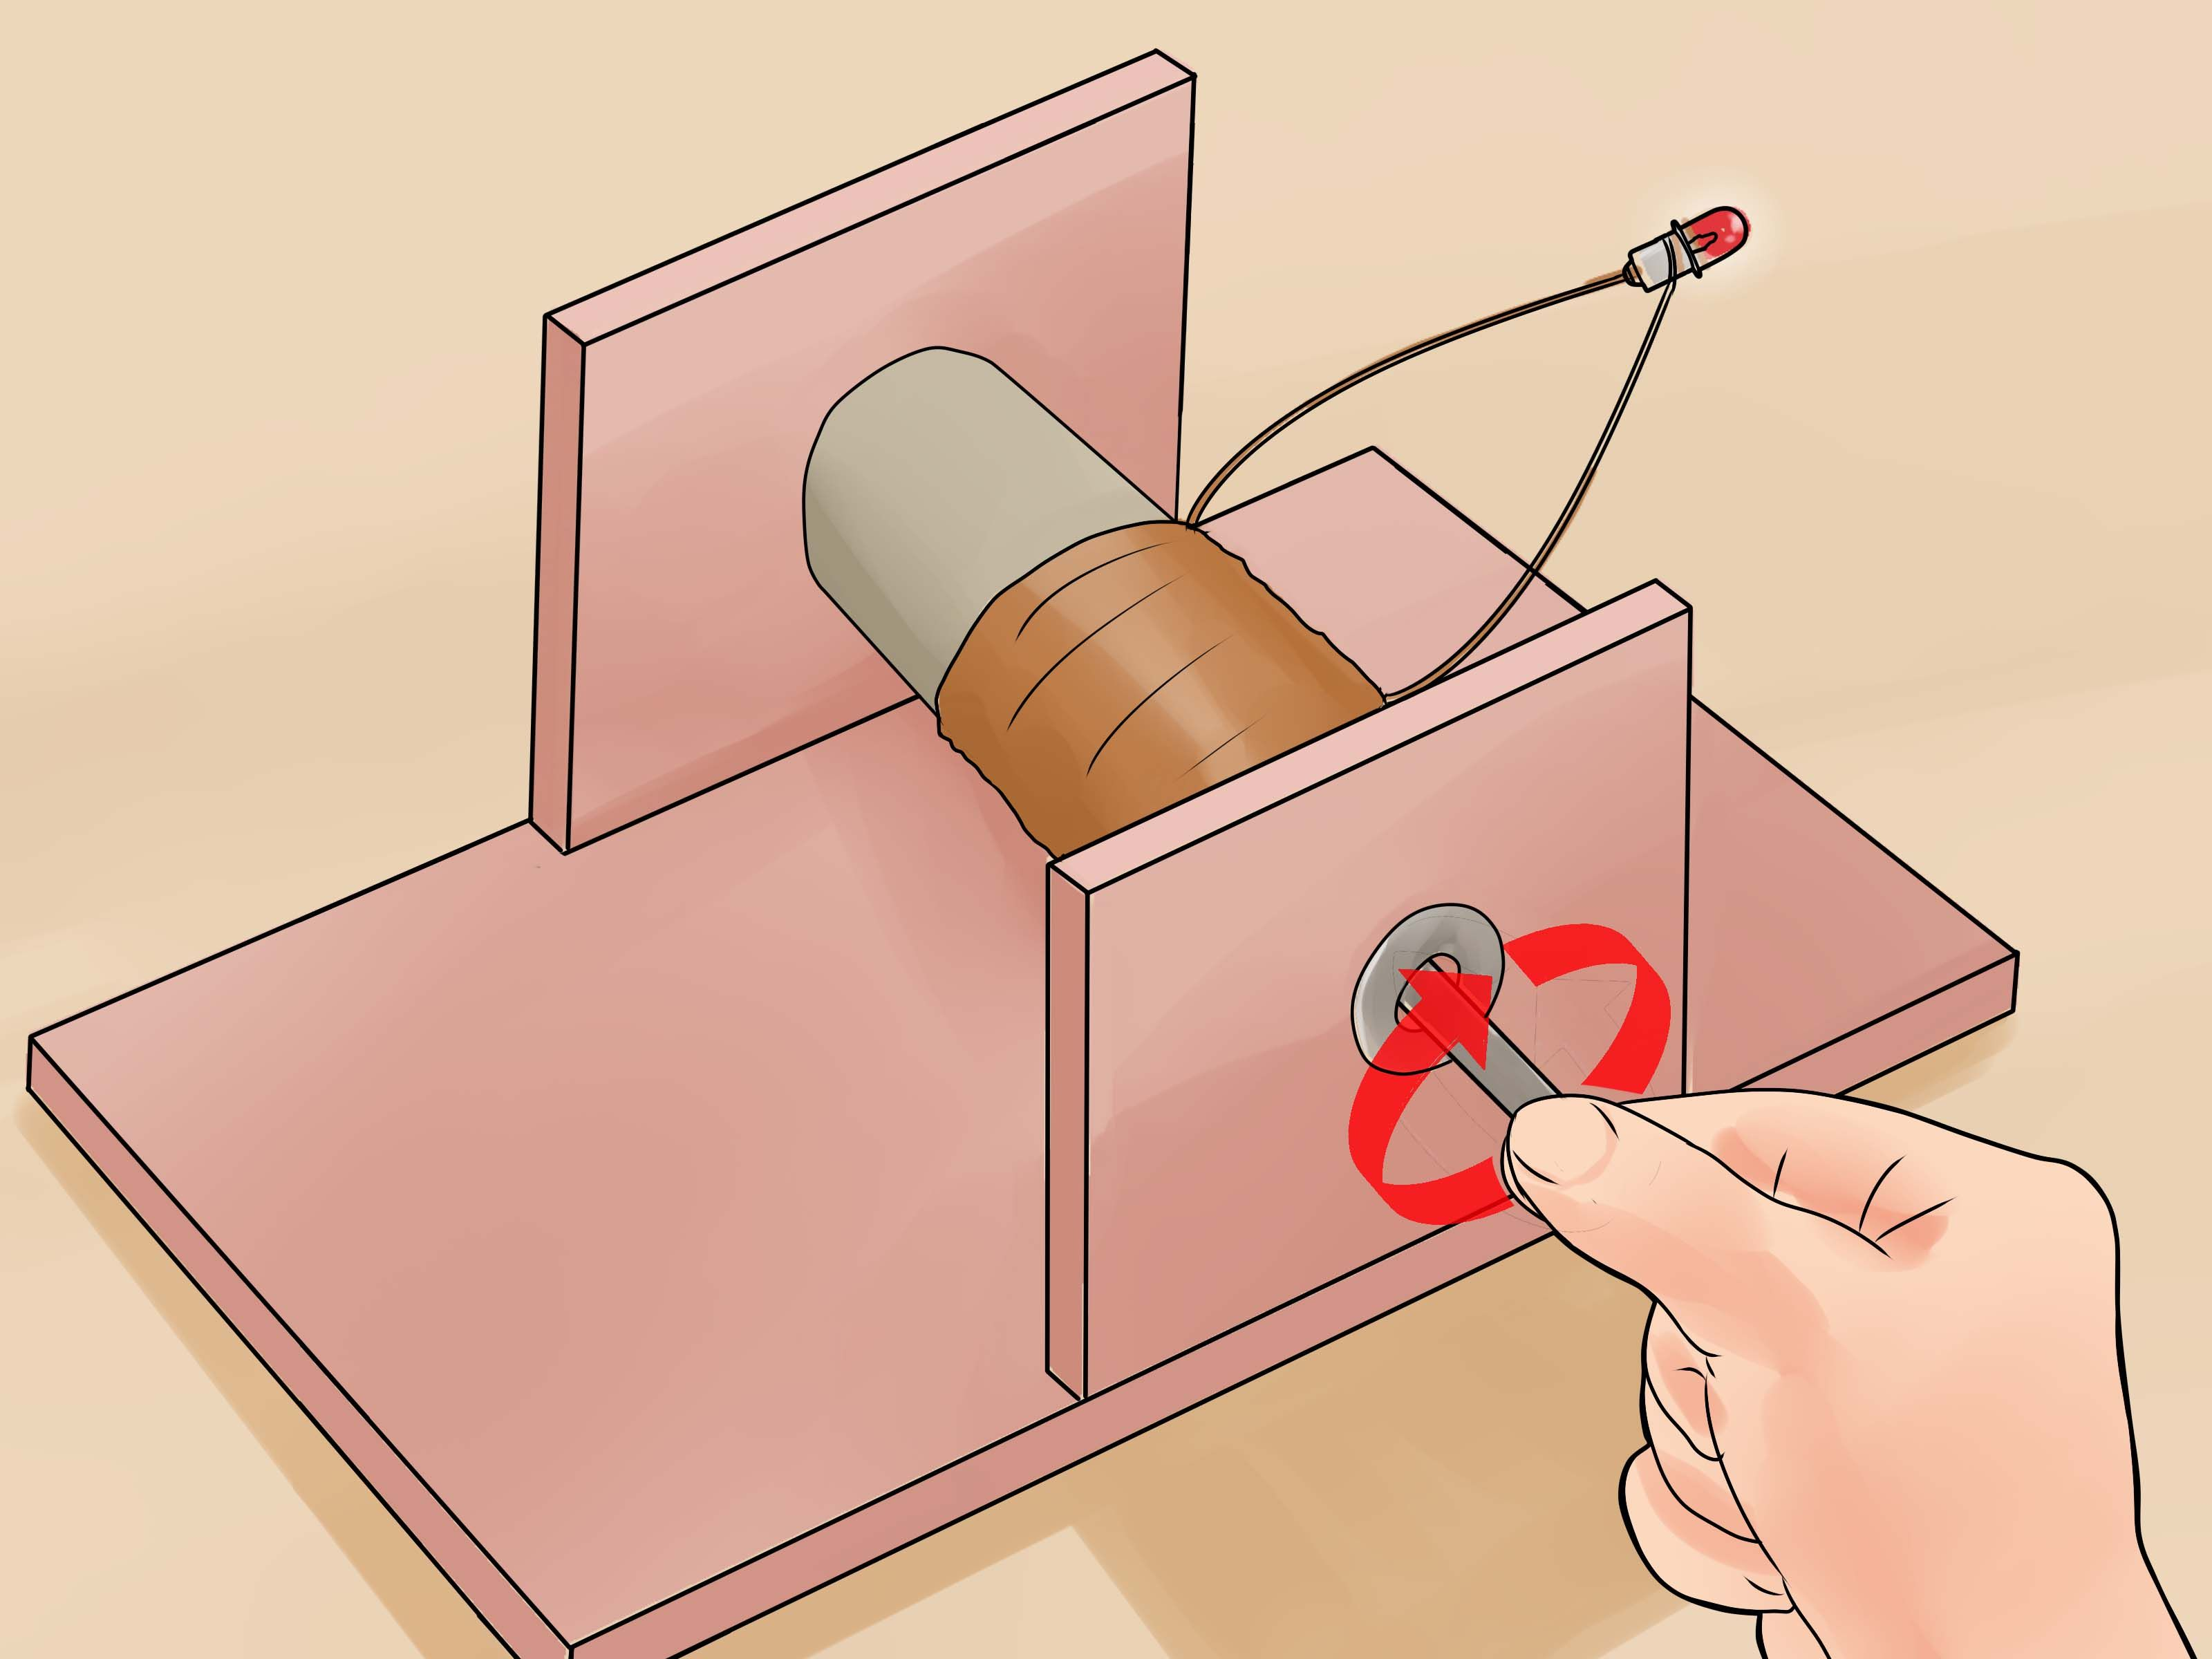 medium resolution of building a simple low powered electric generator can be a fun science fair project or just a workshop experiment for a would be engineer